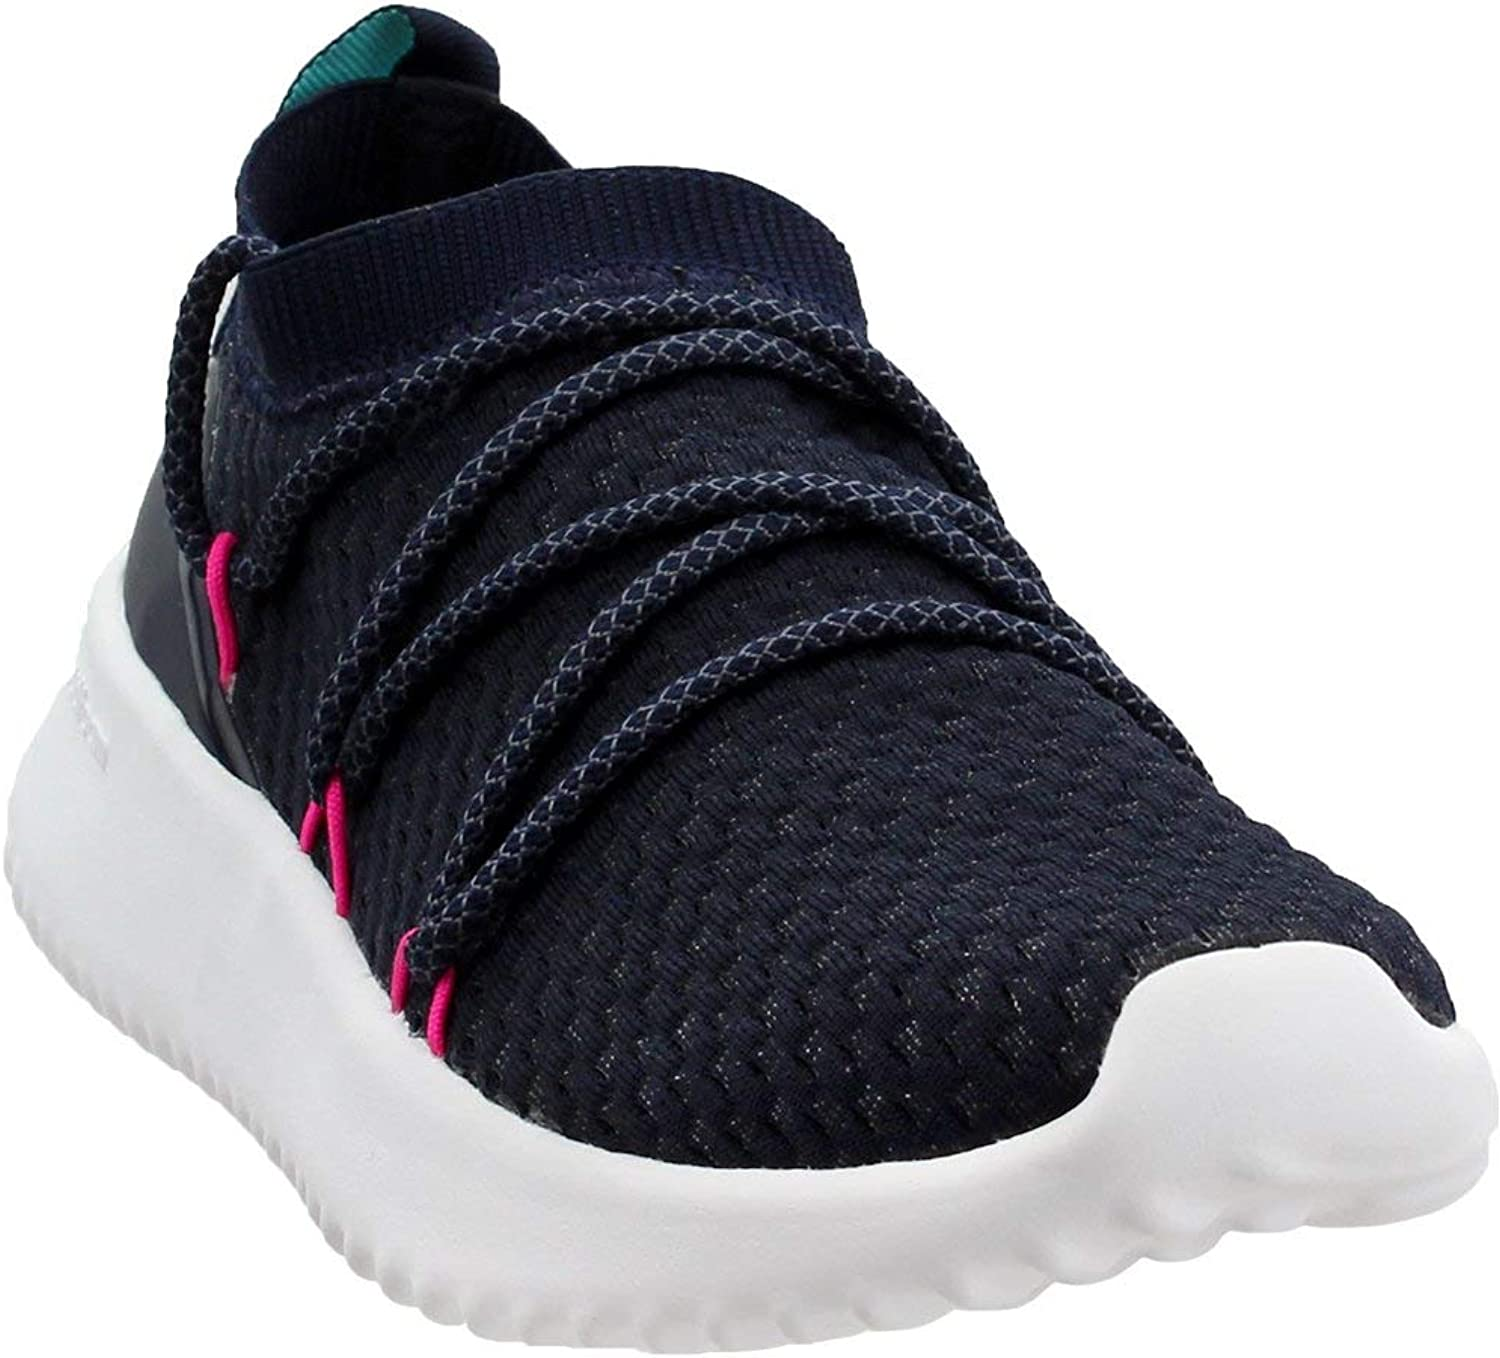 Adidas Ultimamotion shoes Women's Running